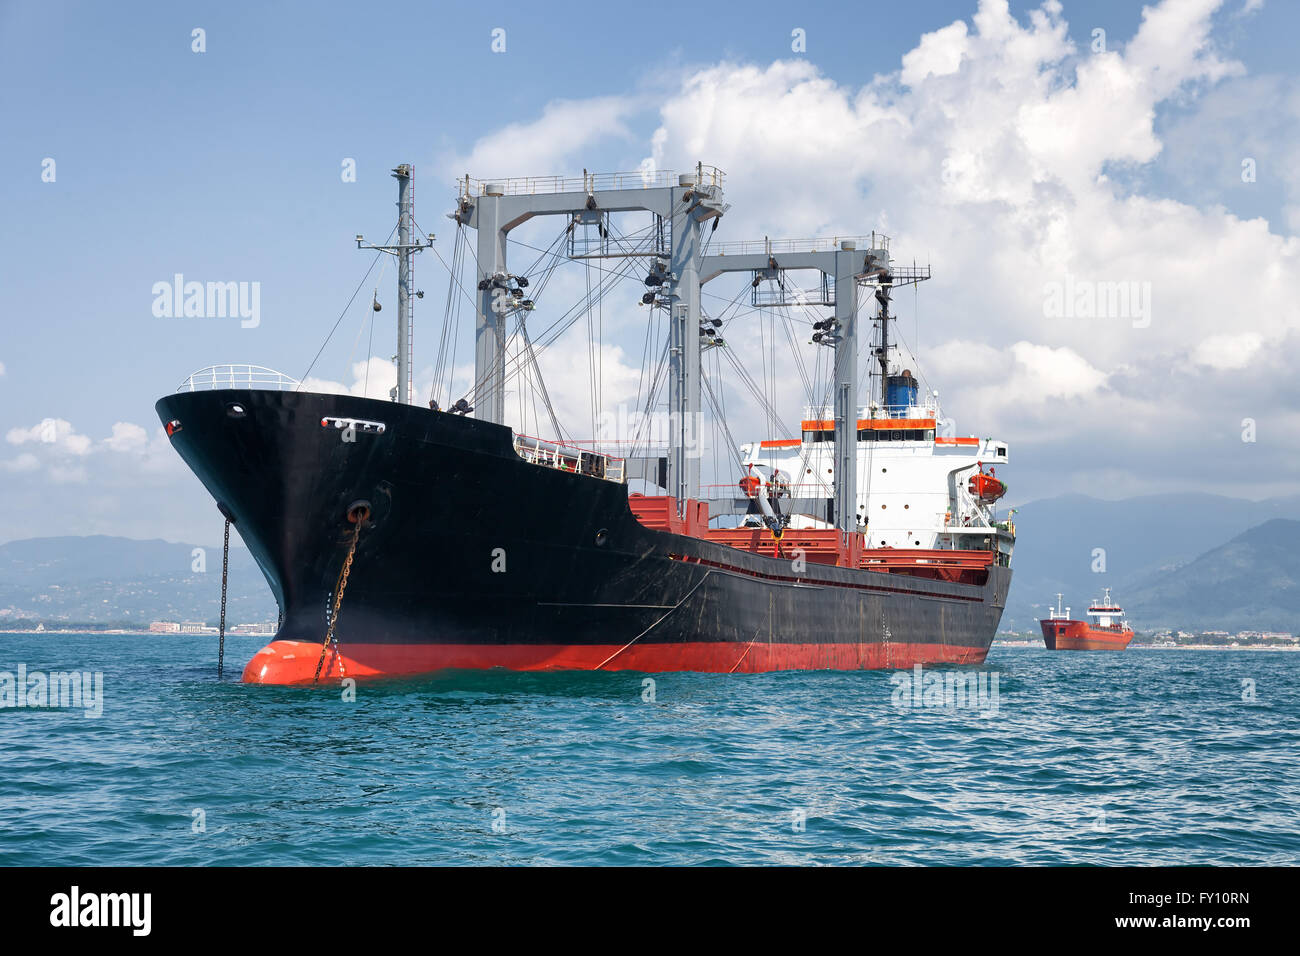 commercial cargo ship on ocean - Stock Image